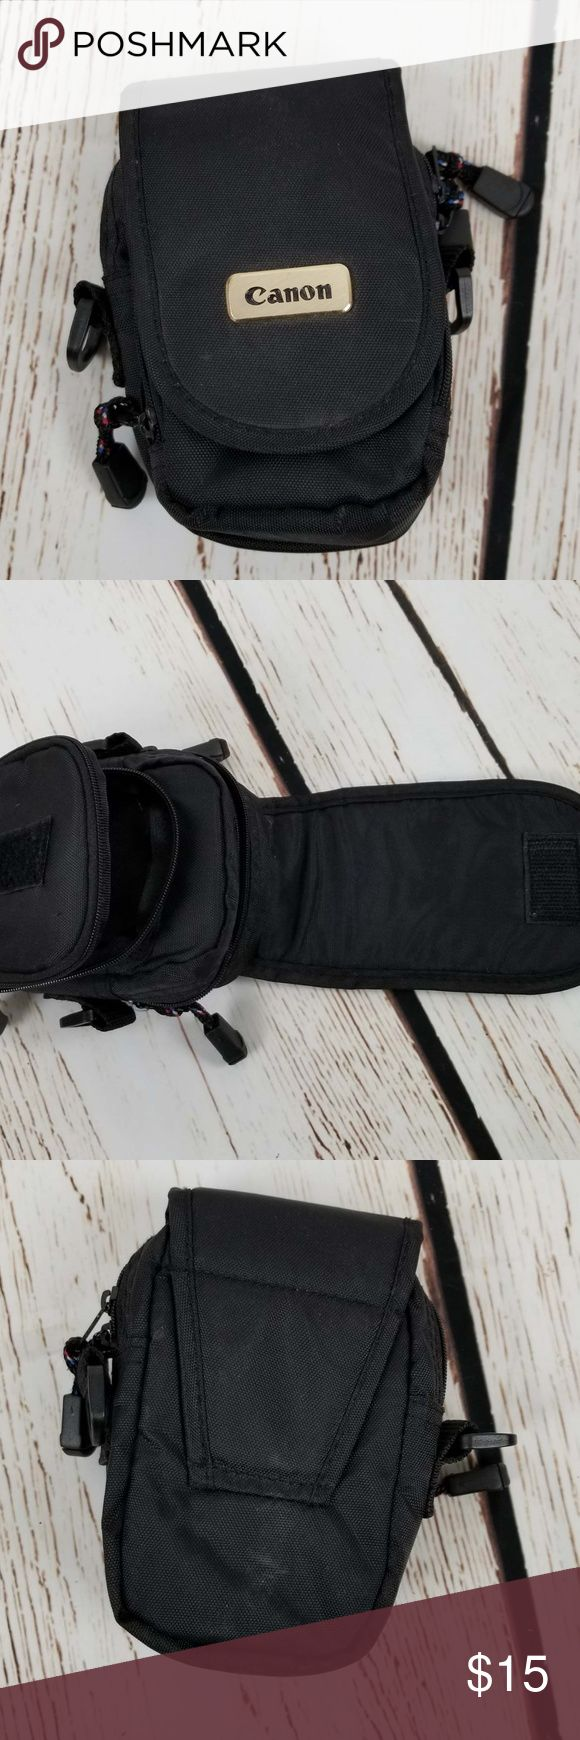 Canon Compact Camera Bag Belt Loop Nylon Pouch Good condition. Missing shoulder strap. Bag Only.  8088 Canon Bags